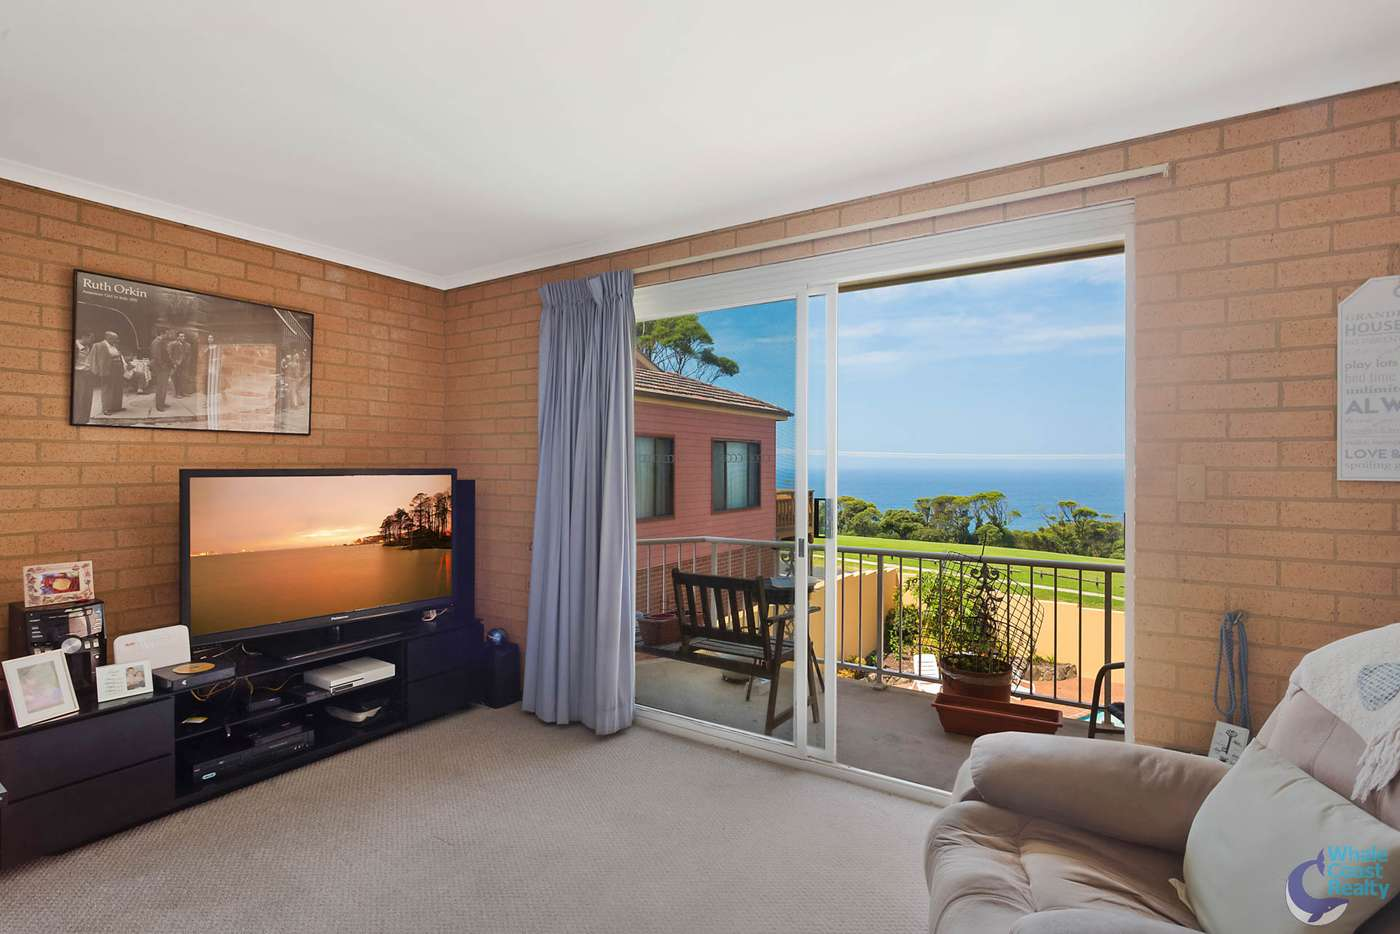 Fifth view of Homely apartment listing, 8/10 Ballingalla Street, Narooma NSW 2546